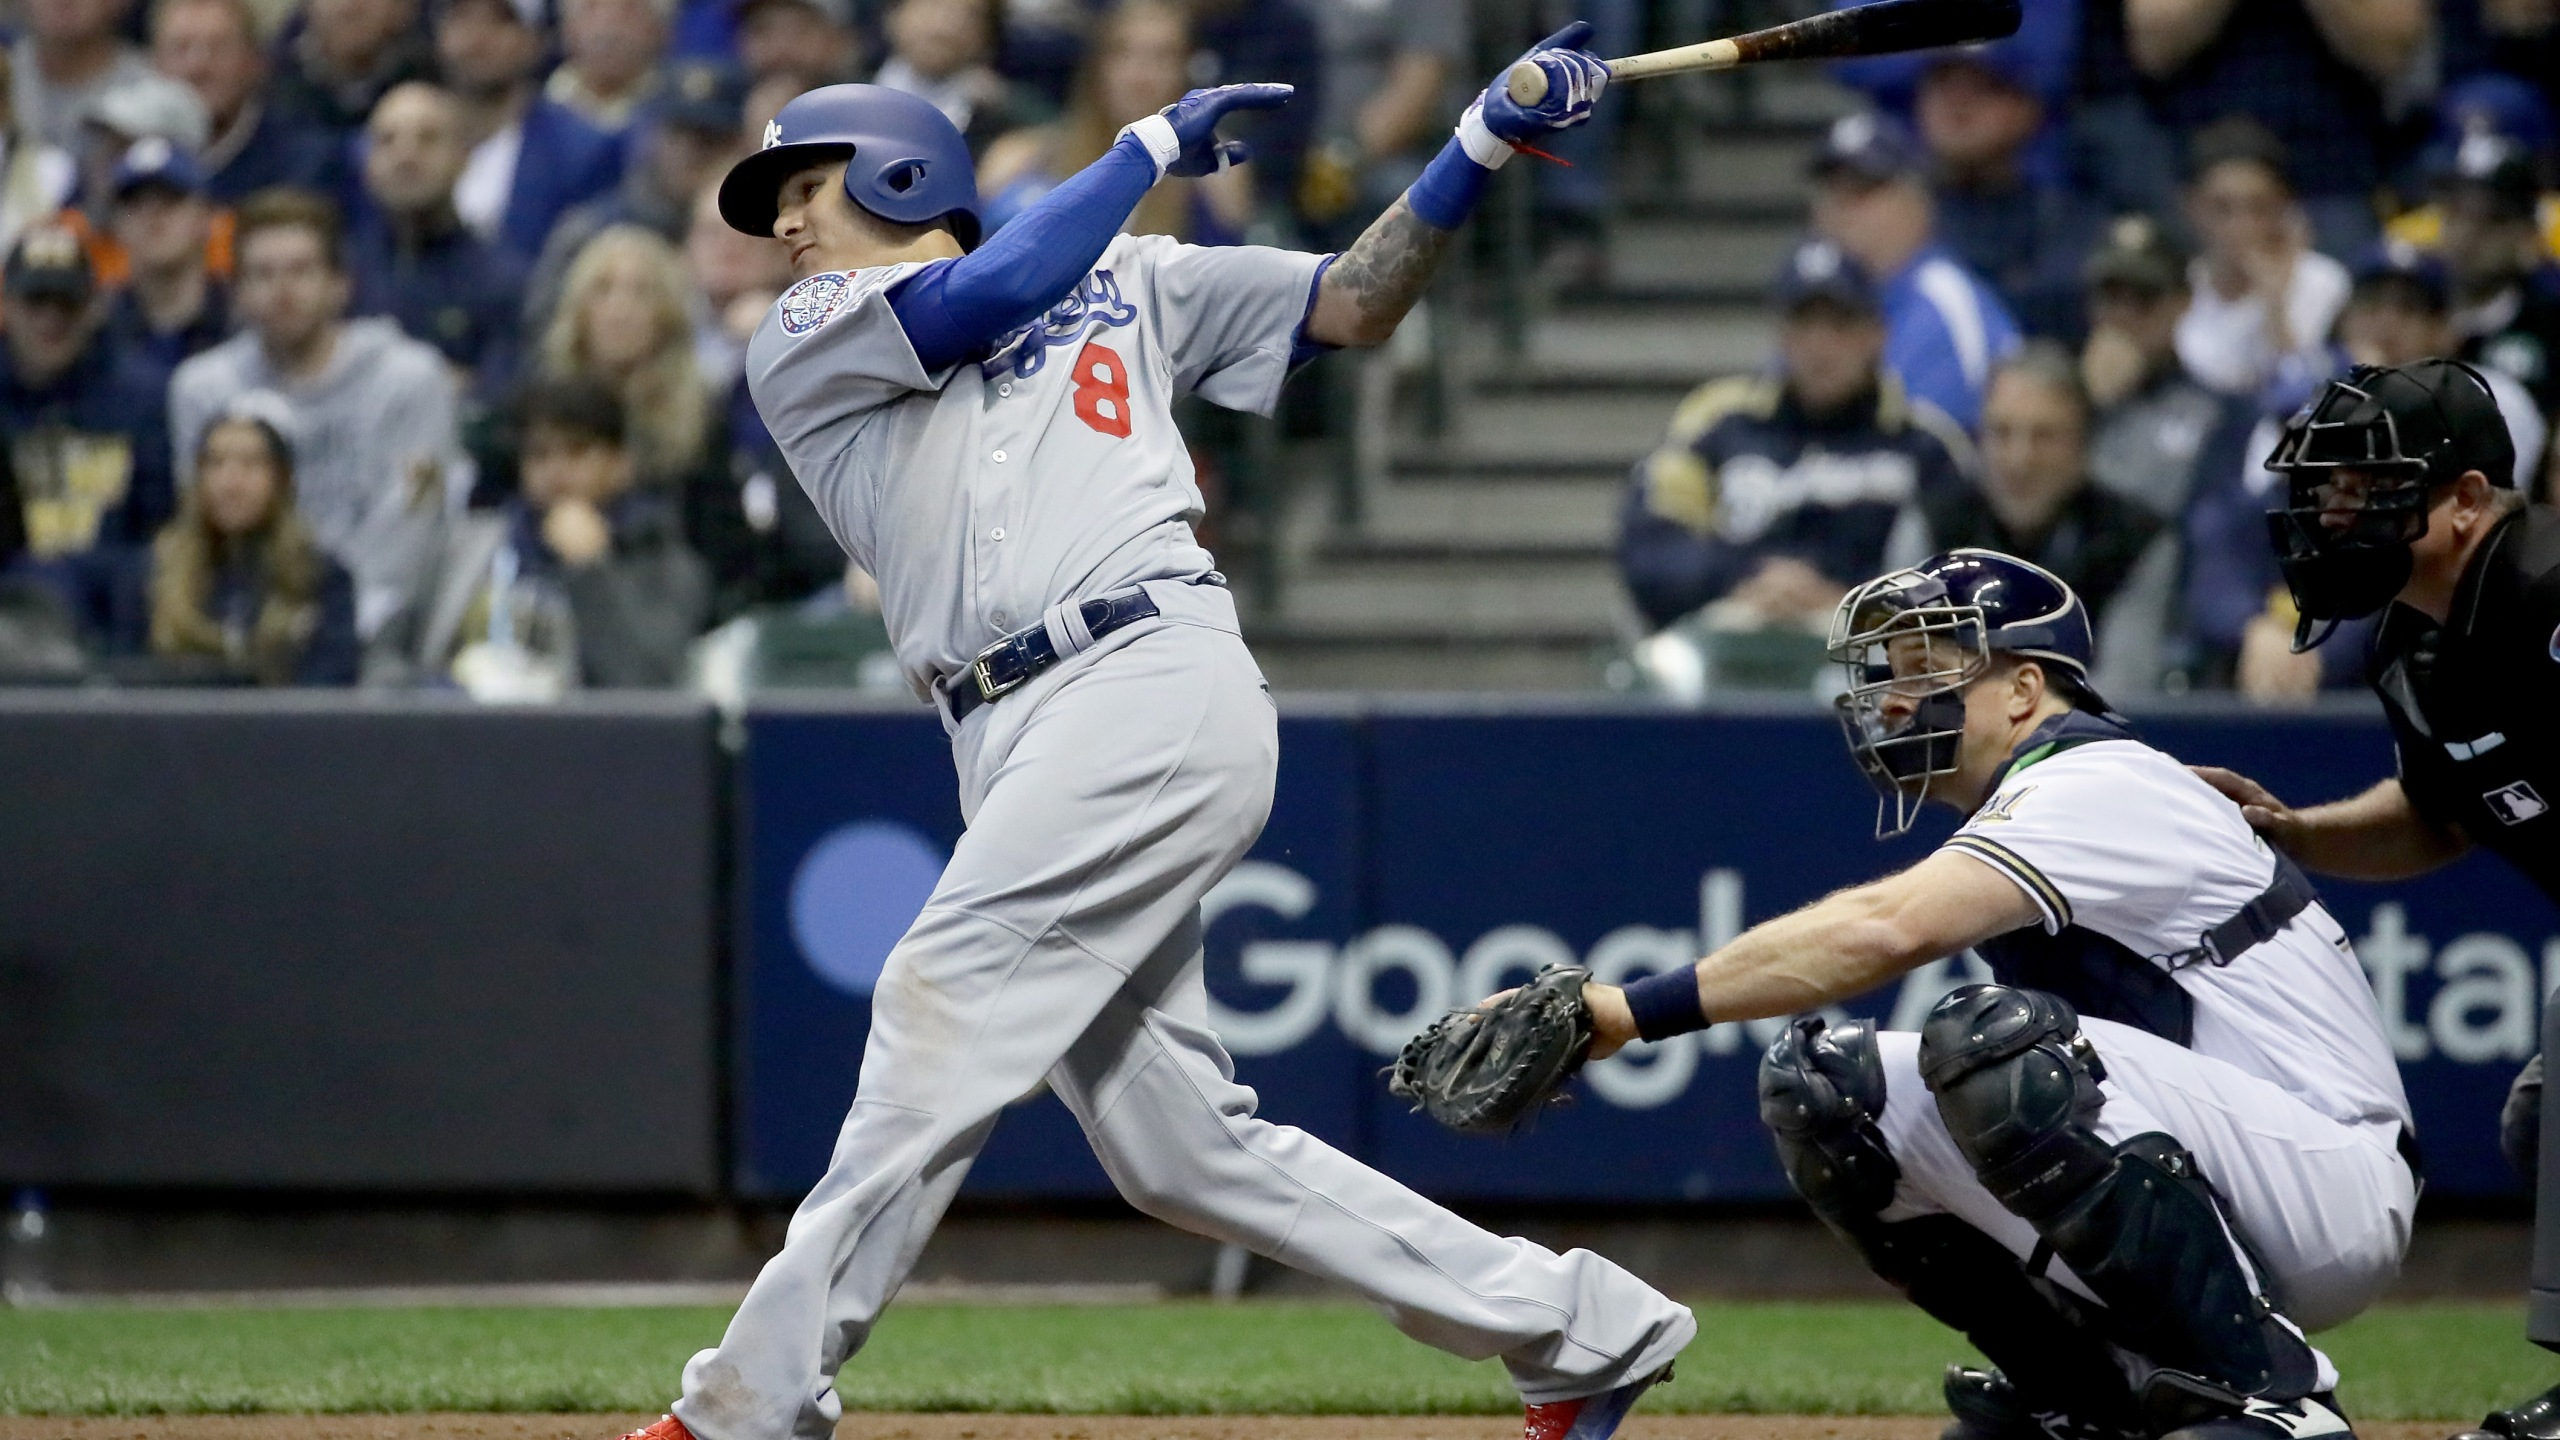 Manny Machado #8 of the Los Angeles Dodgers hits a single against the Milwaukee Brewers during the fourth inning Game Seven of the National League Championship Series at Miller Park on October 20, 2018 in Milwaukee, Wisconsin. (Credit: Jonathan Daniel/Getty Images)